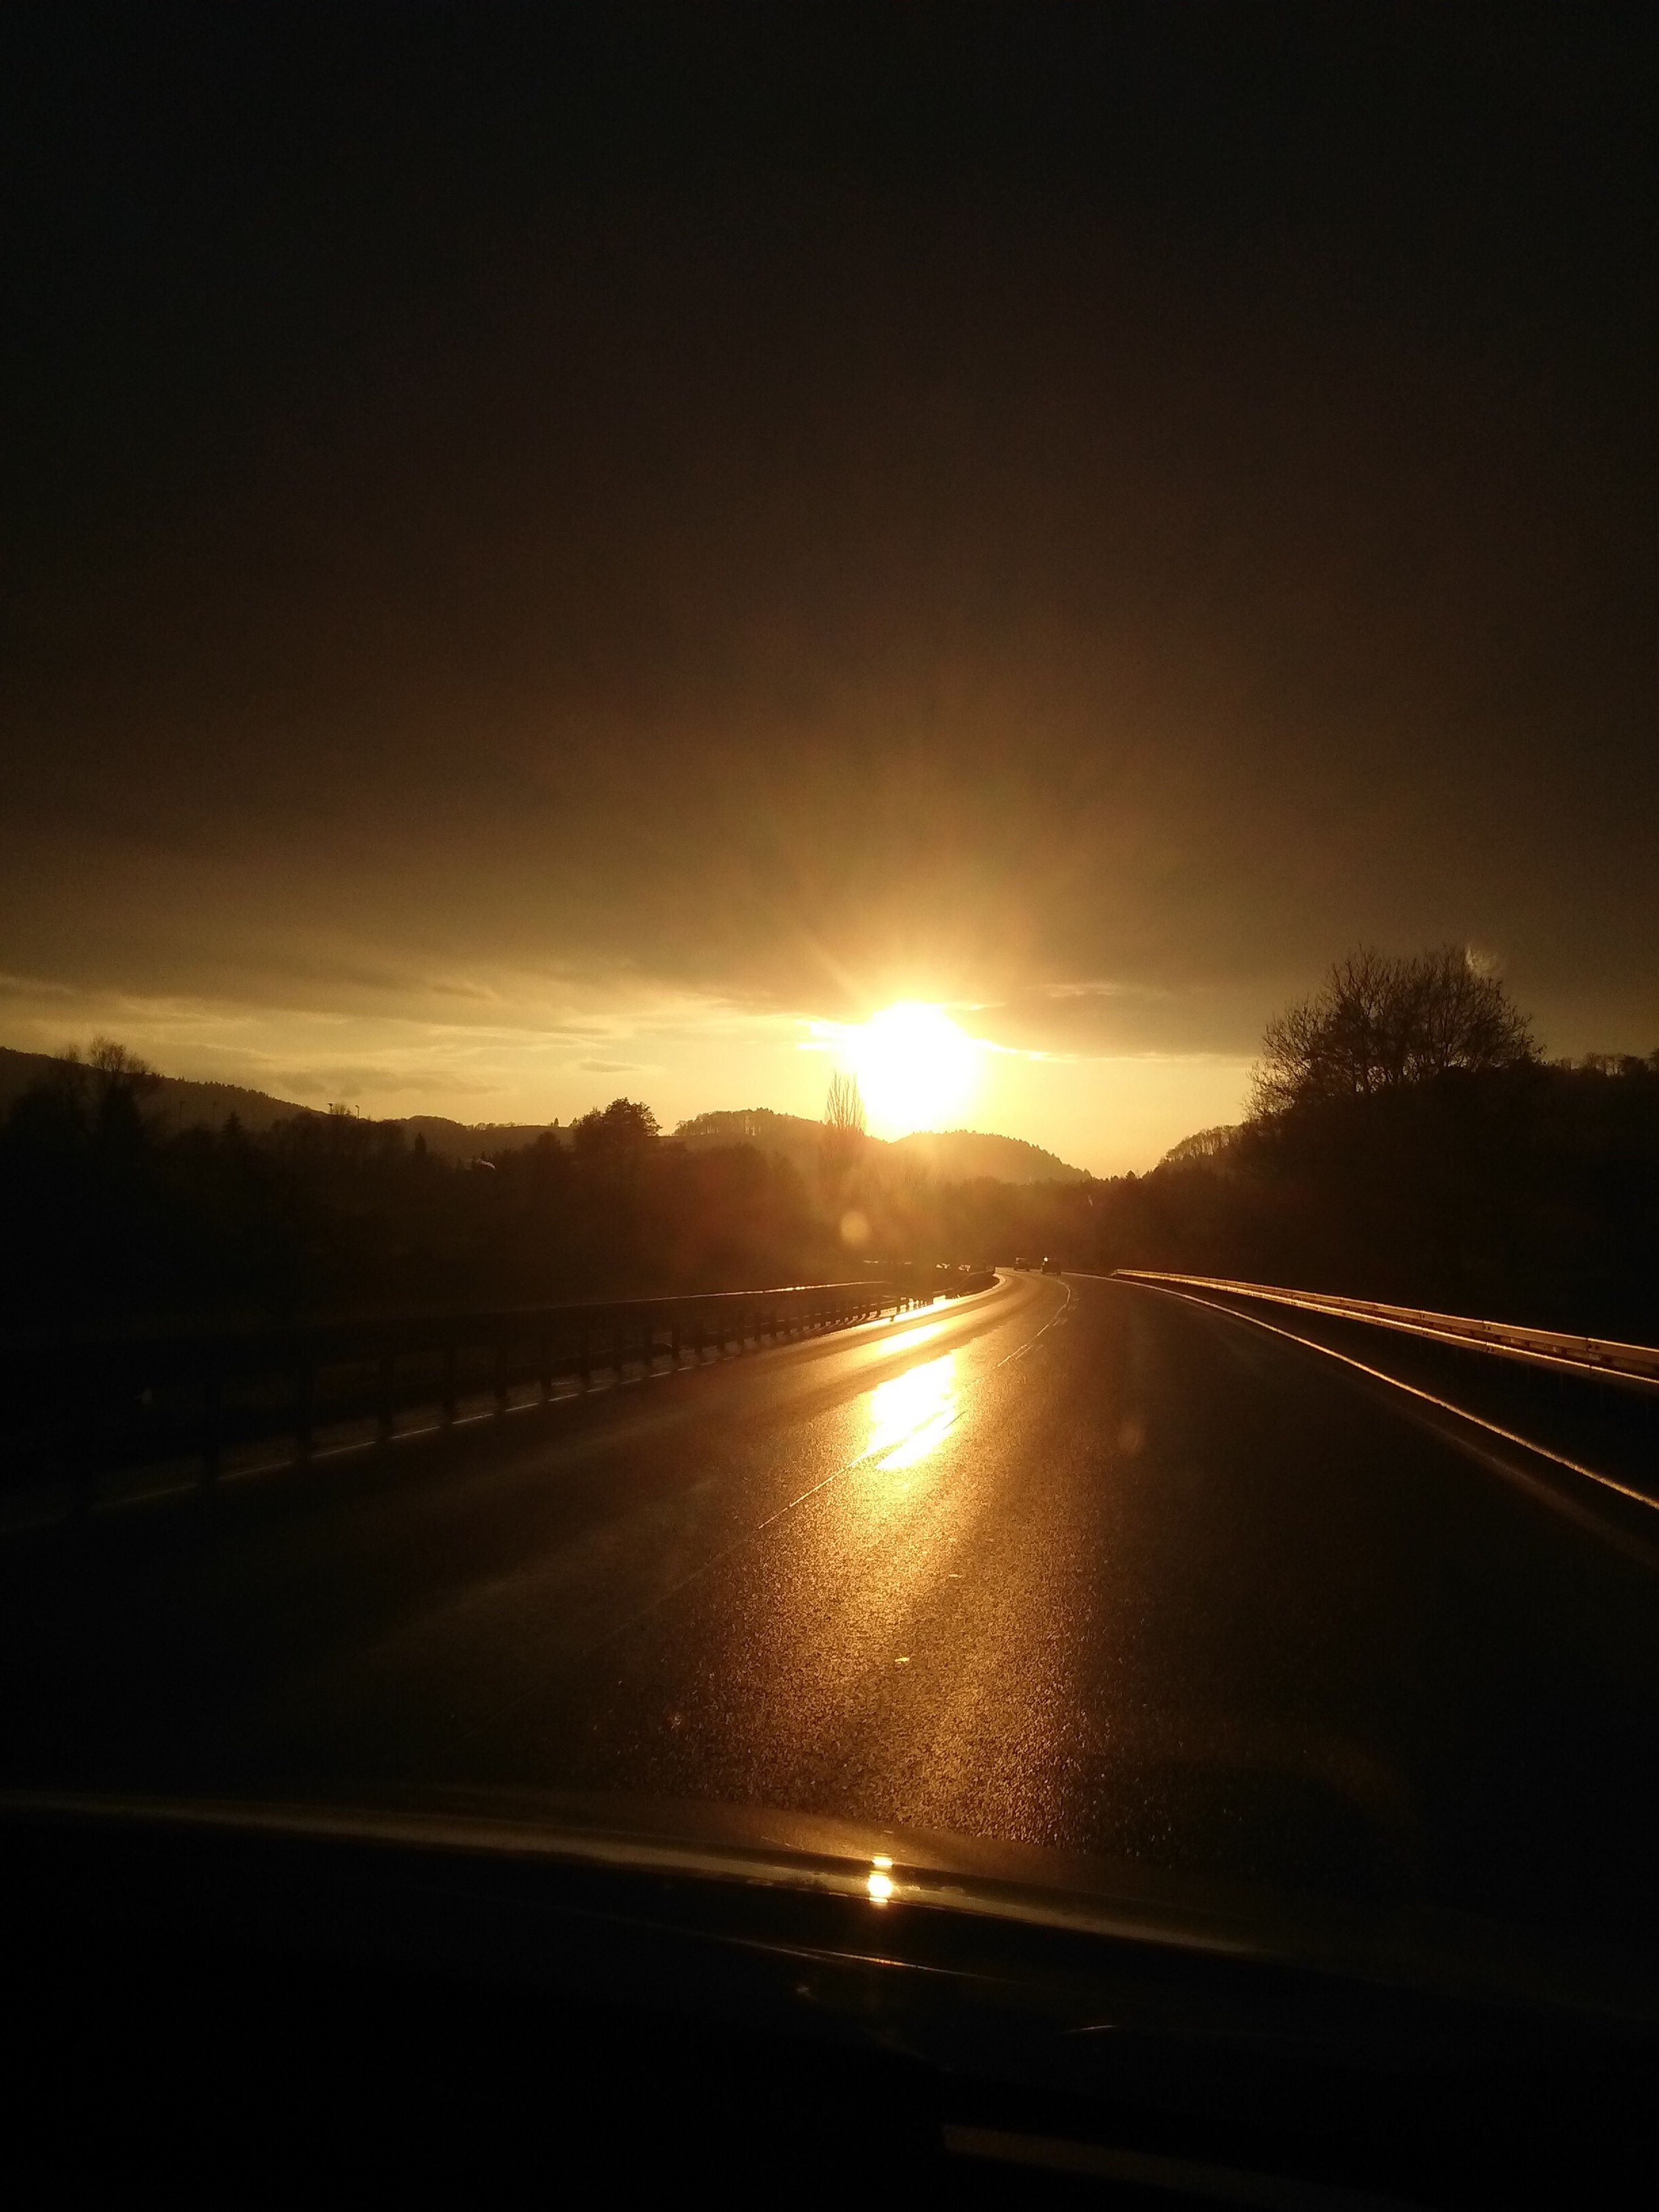 sunset, road, sun, scenics, tranquil scene, orange color, idyllic, water, beauty in nature, tranquility, sky, nature, remote, outdoors, majestic, country road, cloud - sky, no people, outline, non-urban scene